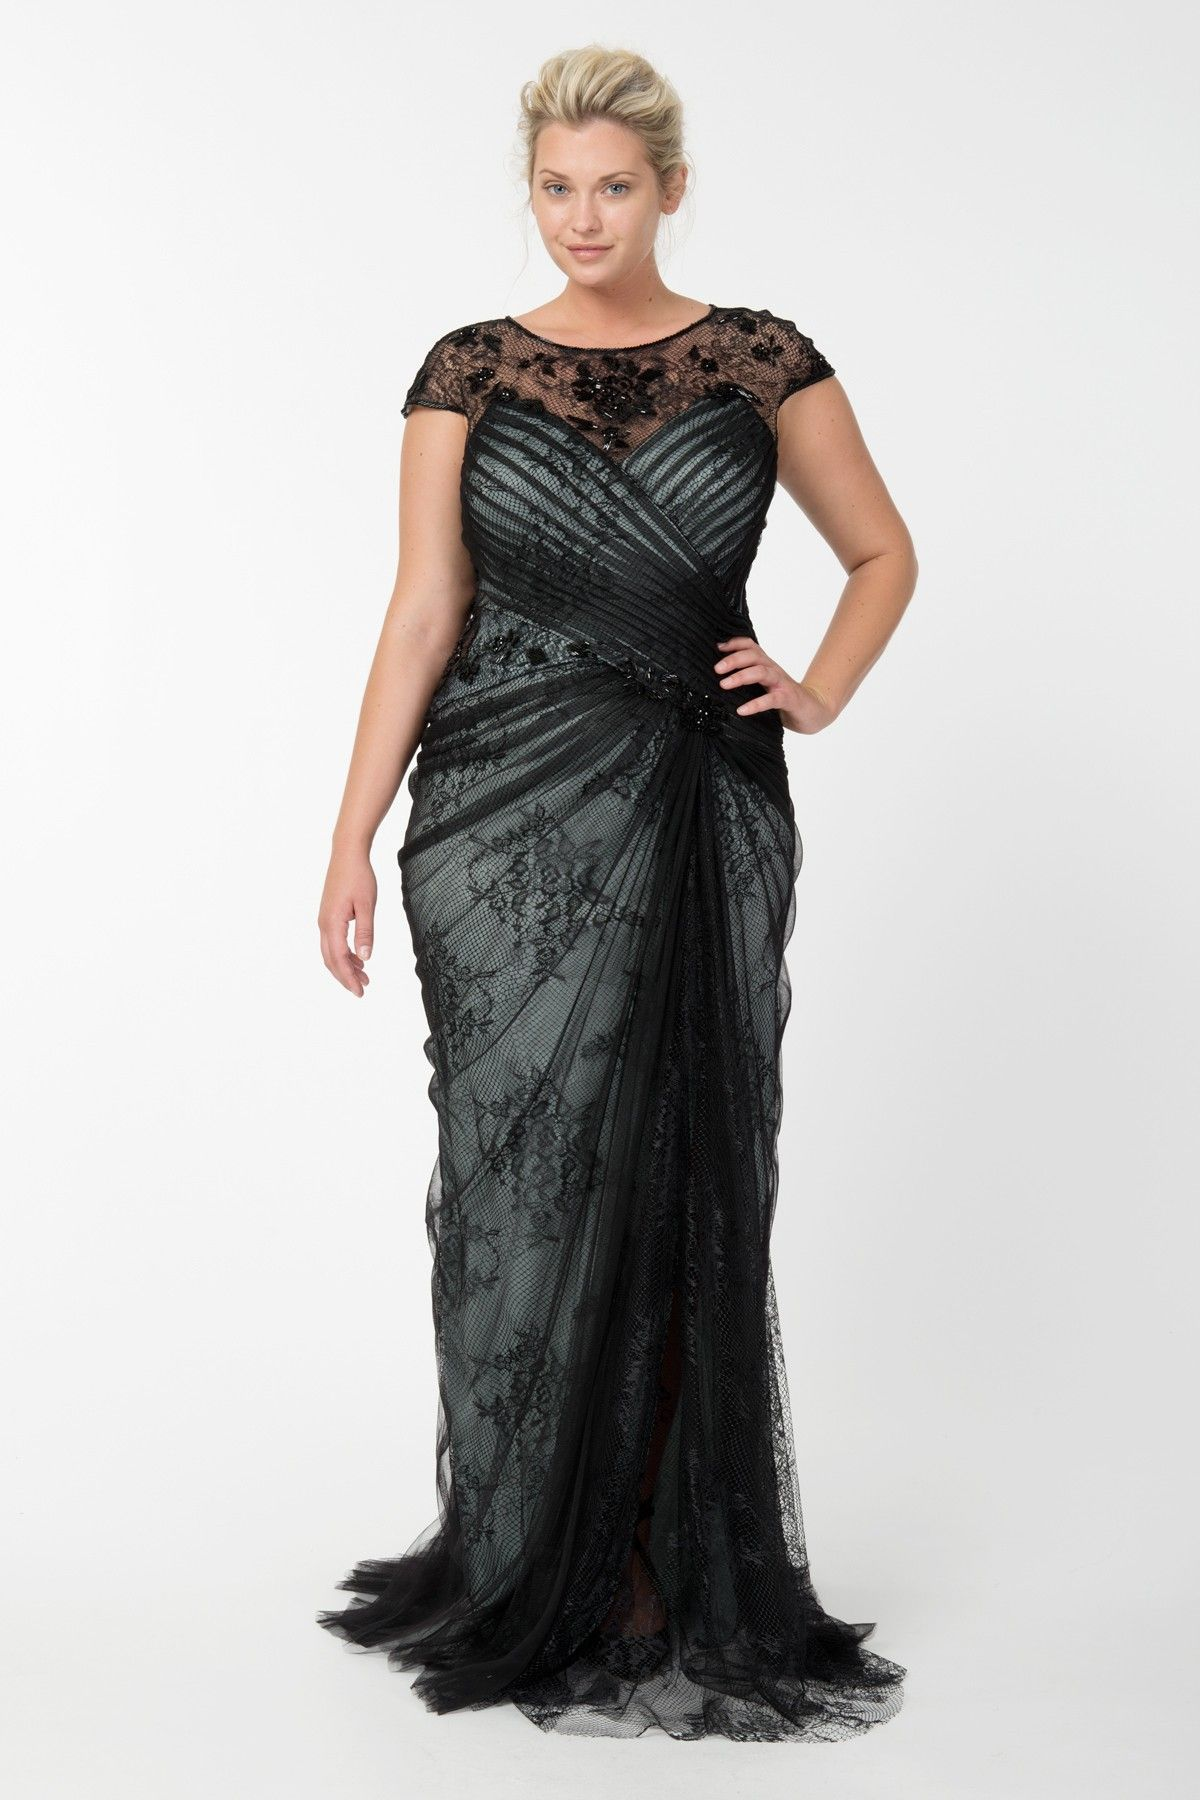 Lace and Draped Tulle Gown in Black / Marble - Plus Size Evening ...